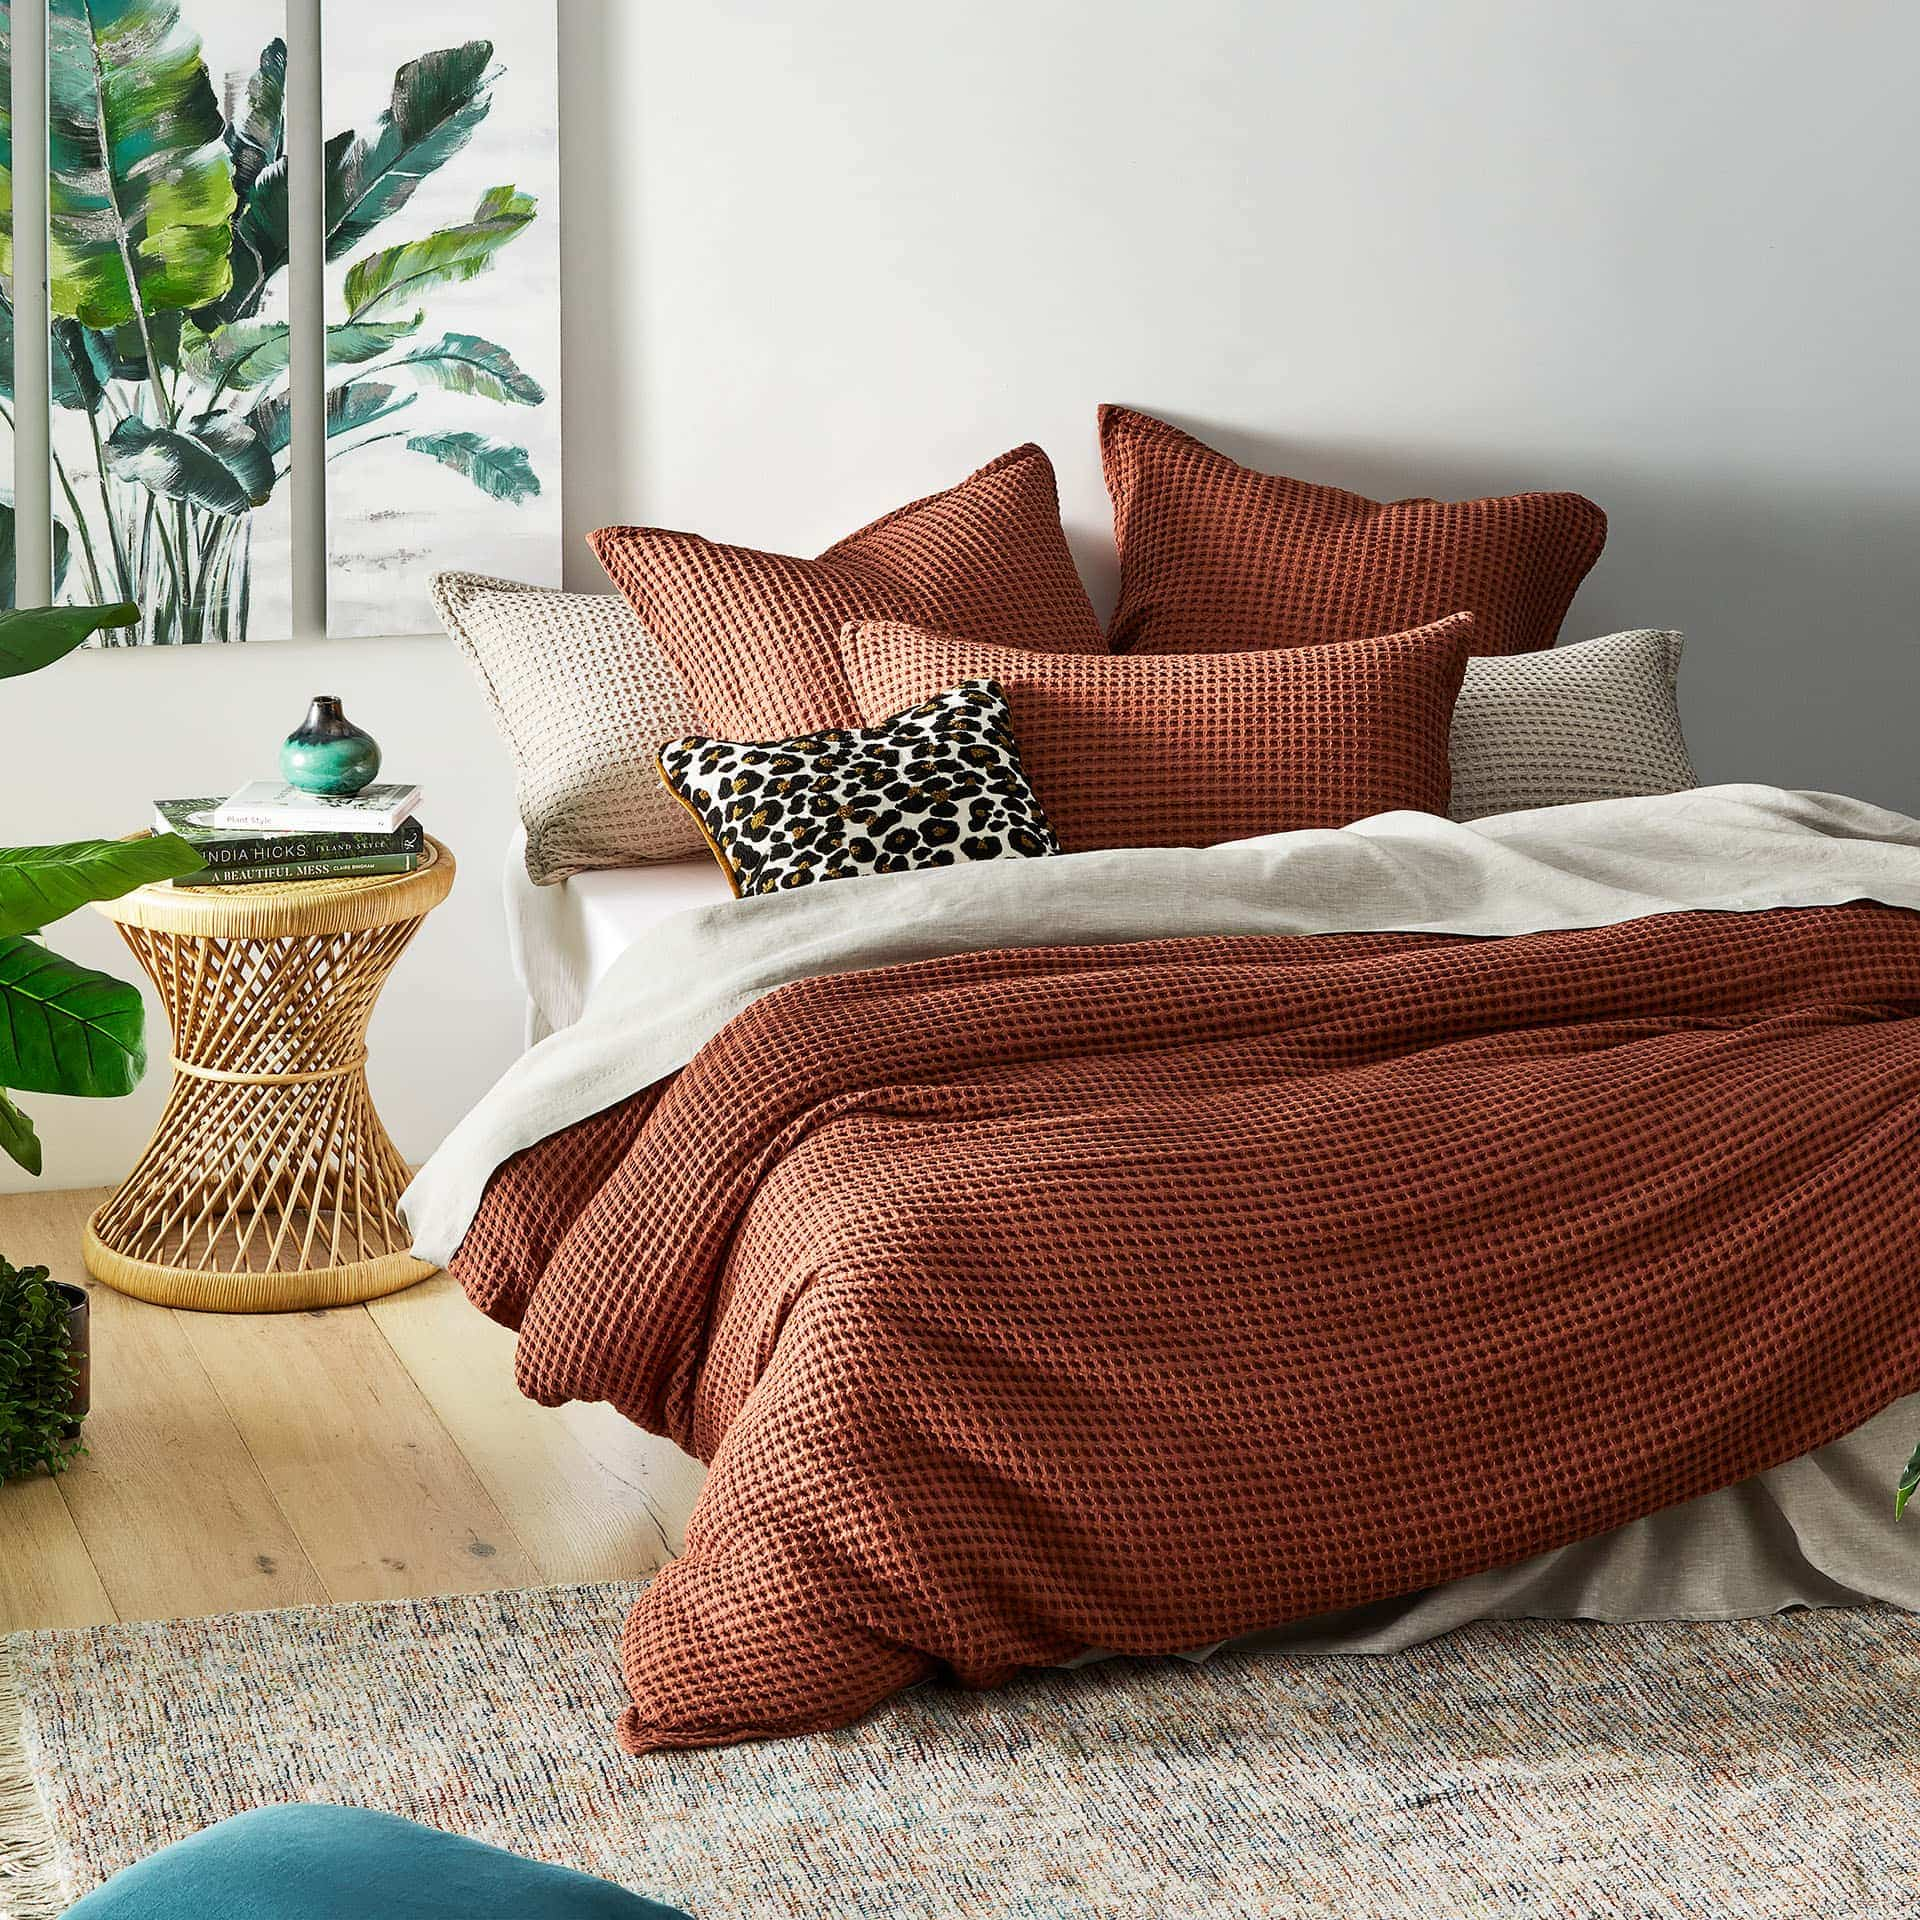 adairs terracotta lattice bedding set in white bedroom with leopard print cushion